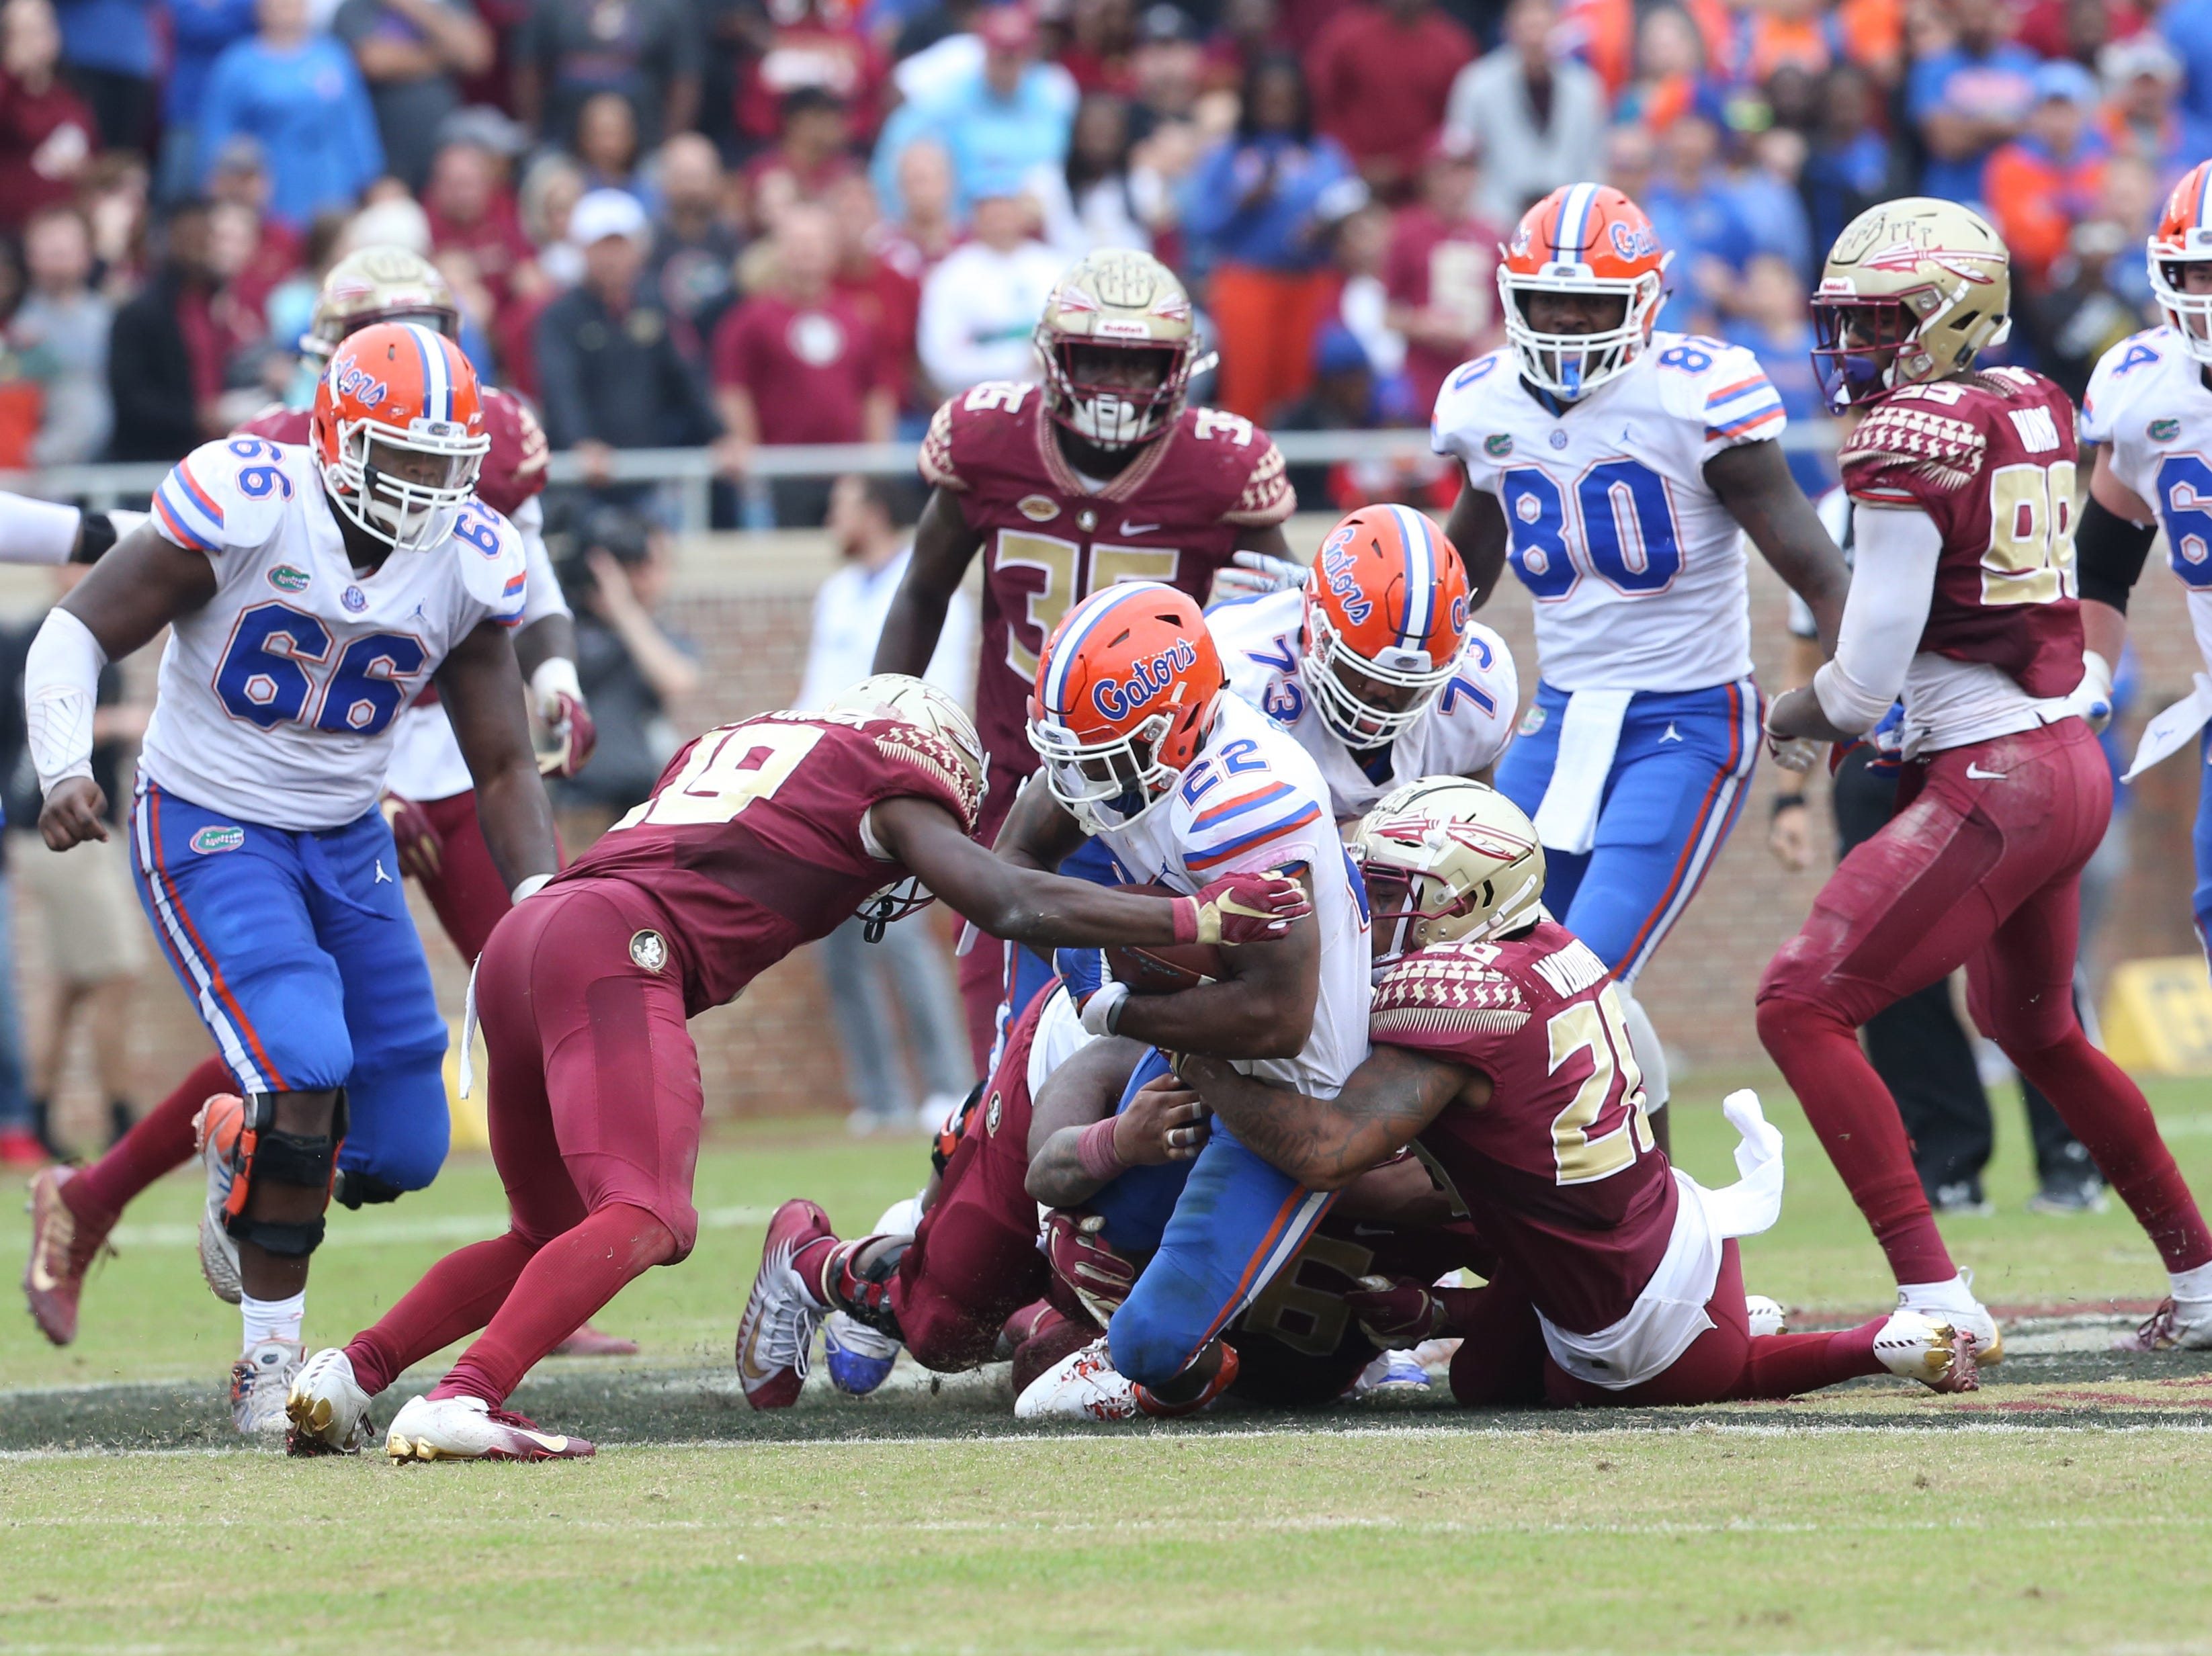 Florida Gators running back Lamical Perine (22) gets taken down by the Seminole defense as the Florida State Seminoles take on their rival the Florida Gators in college football at Doak S. Campbell Stadium, Saturday, Nov. 24, 2018.